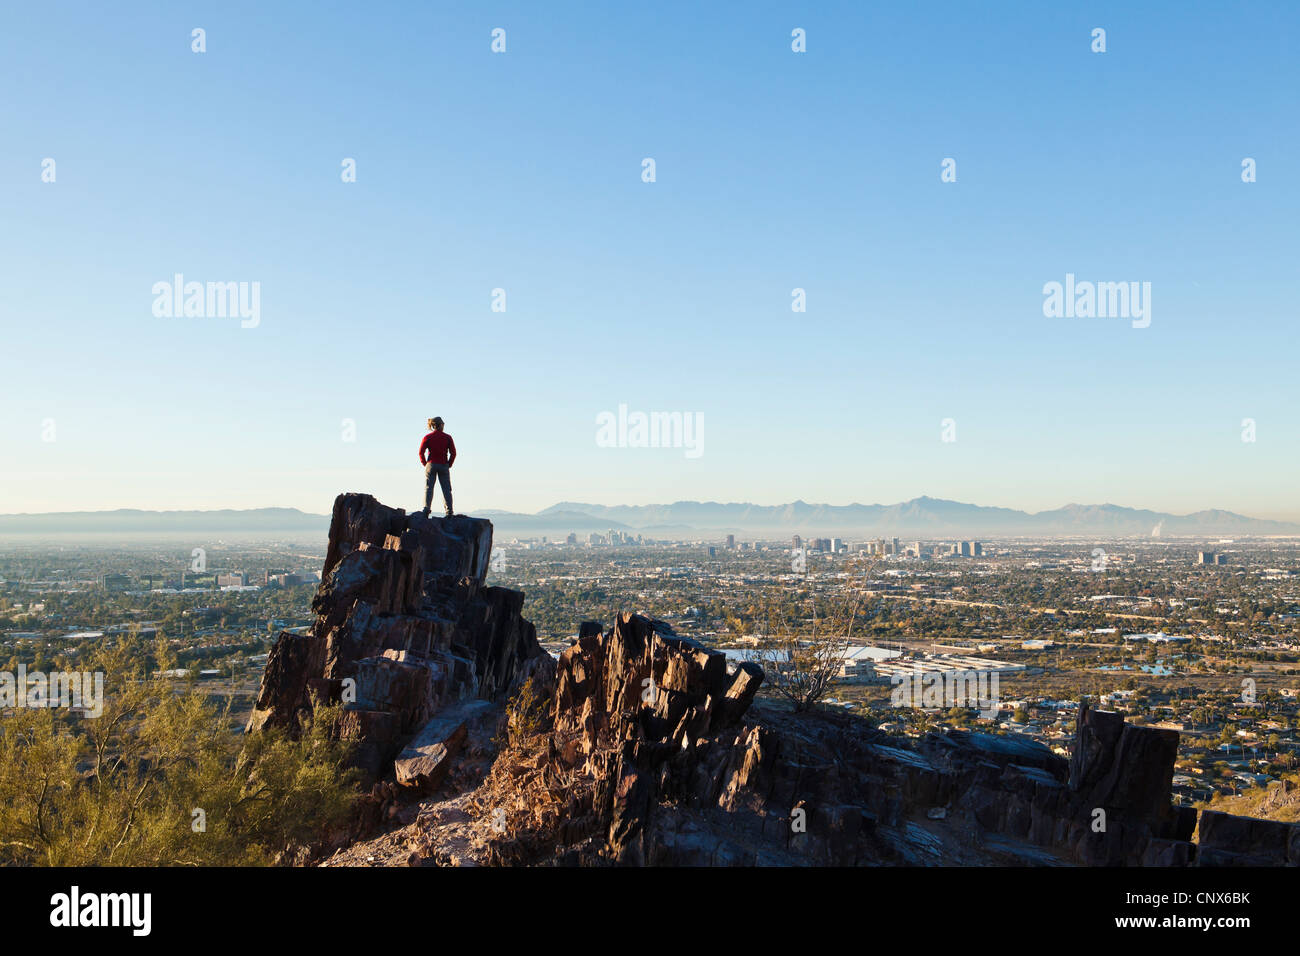 A woman stands atop a rocky outcrop on Piestewa Peak overlooking Phoenix, Arizona / The Valley of The Sun. - Stock Image